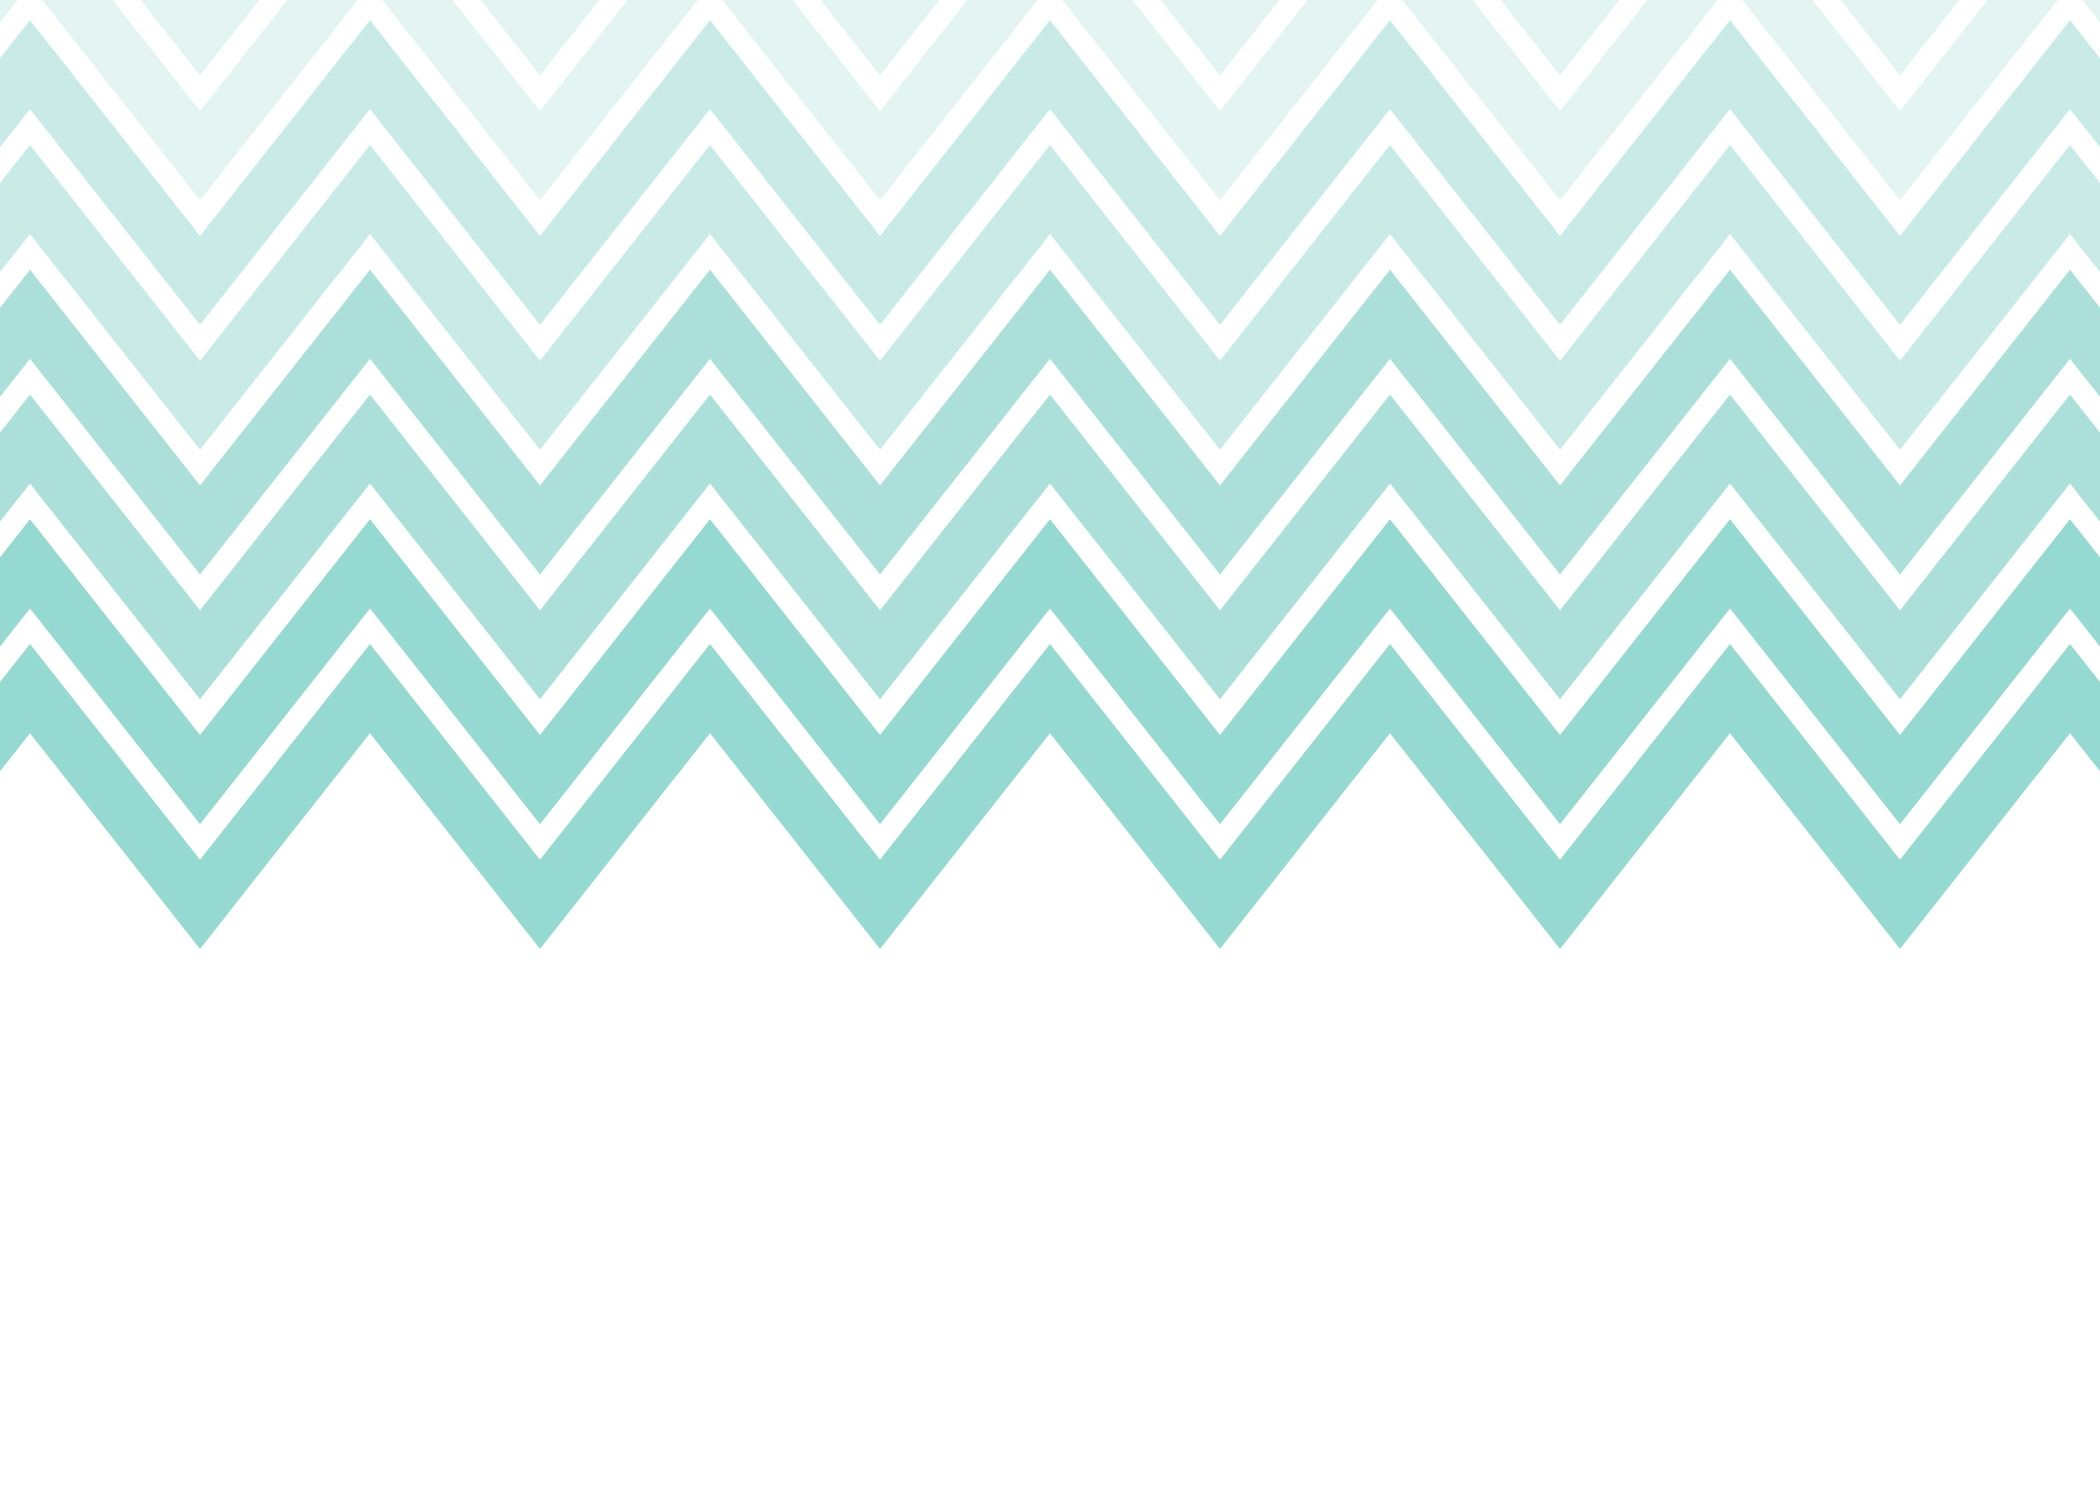 chevron background 44355 best chevron background free vector art downloads from the vecteezy  community chevron background free vector art licensed under creative.